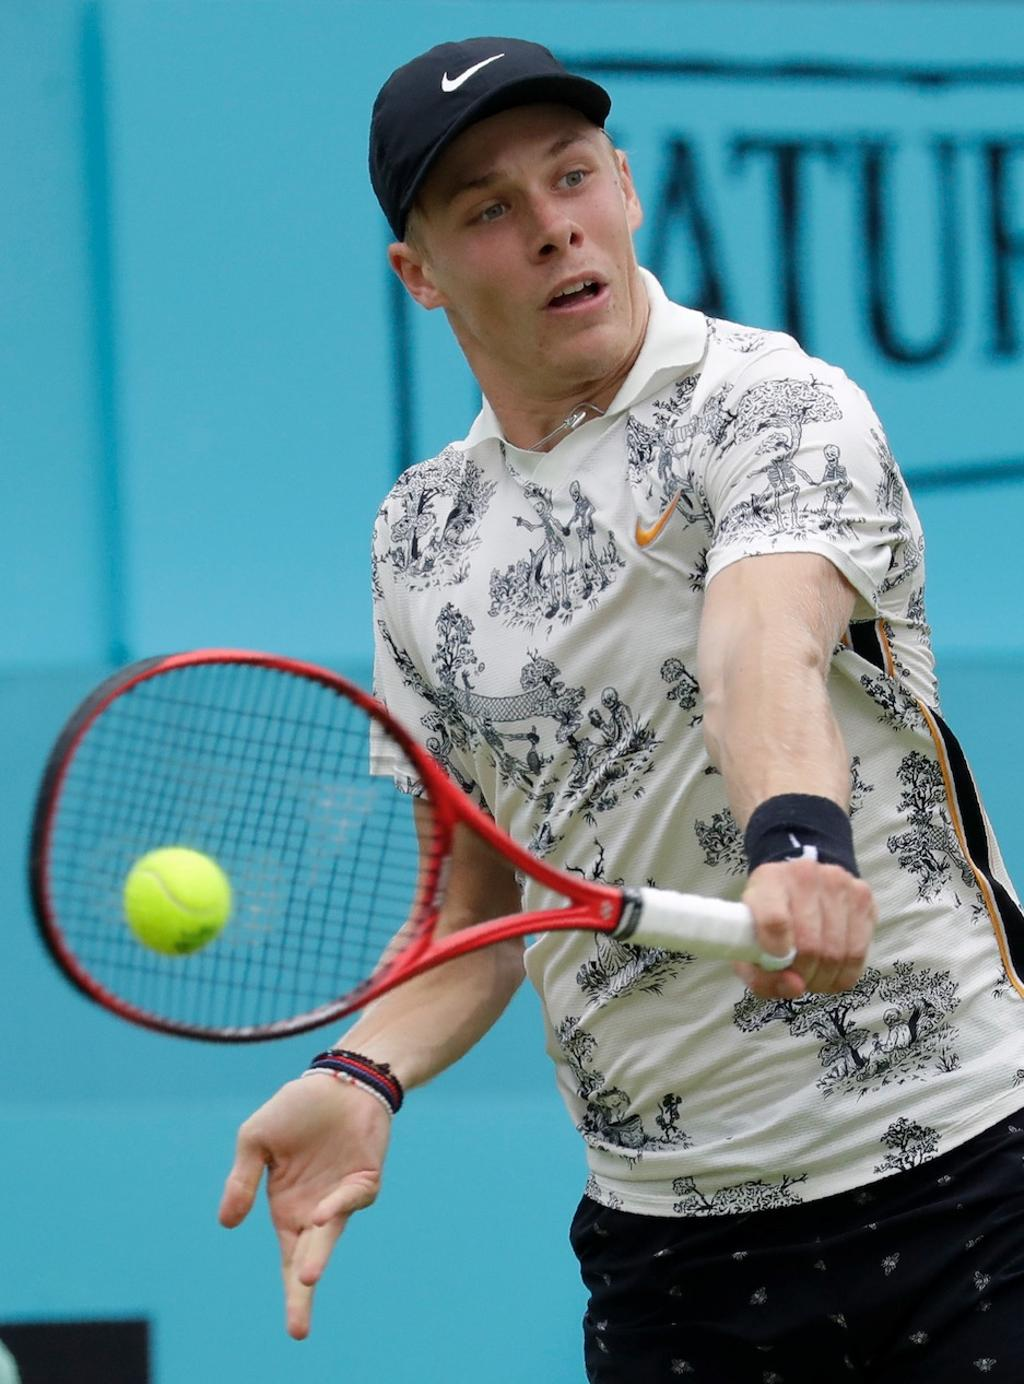 Denis Shapovalov au tournoi de Queens, à Londres, le 19 juin